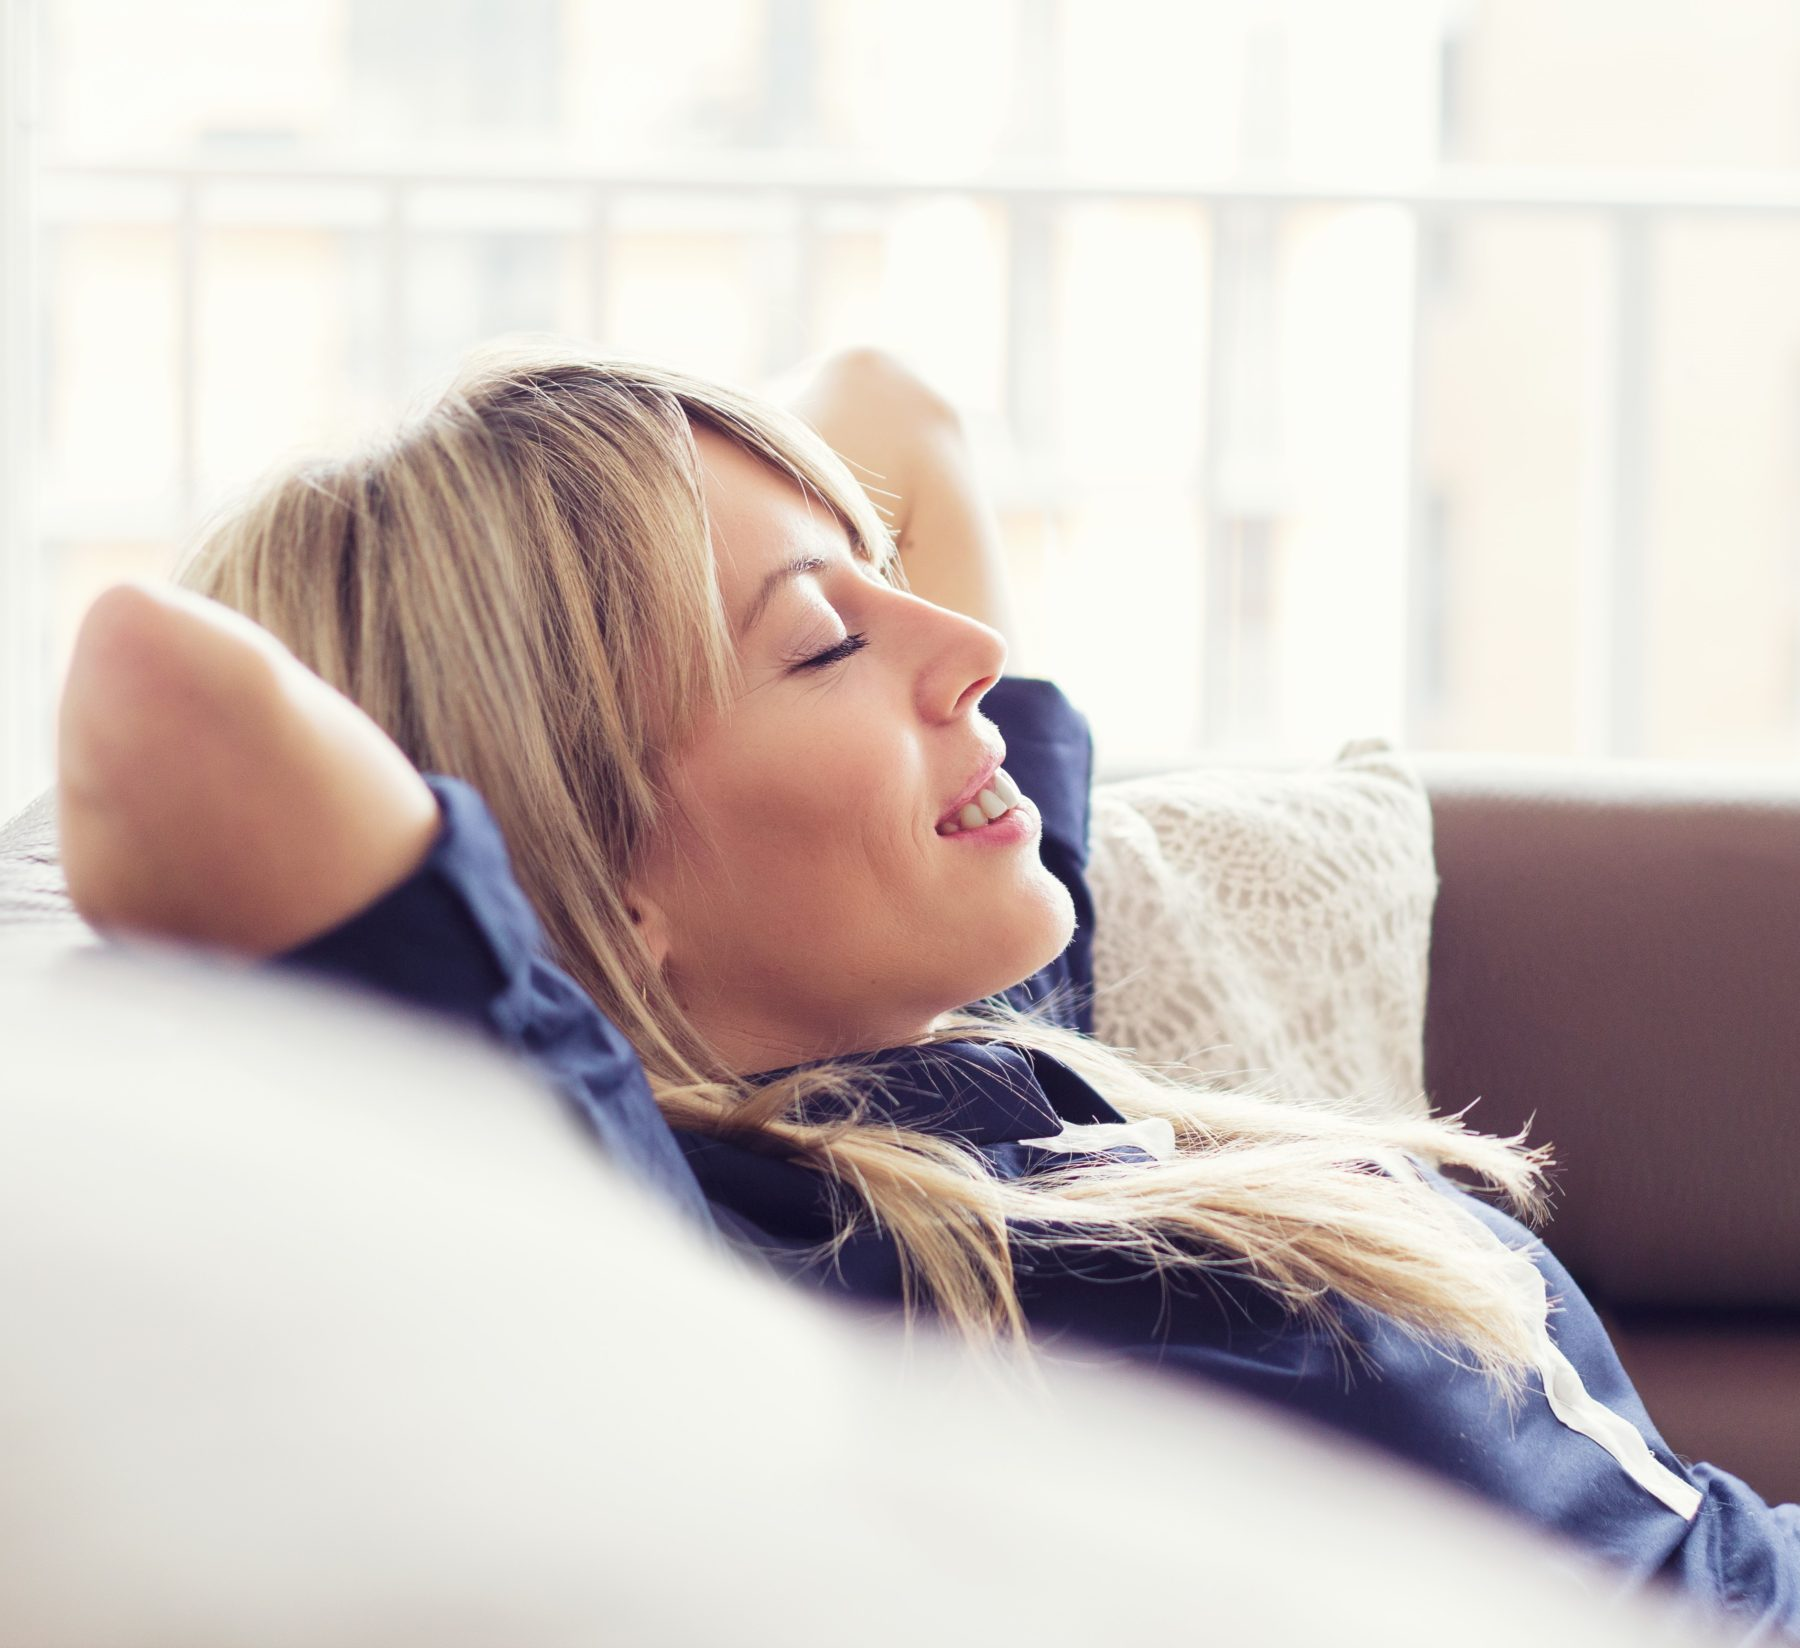 Relaxed young woman